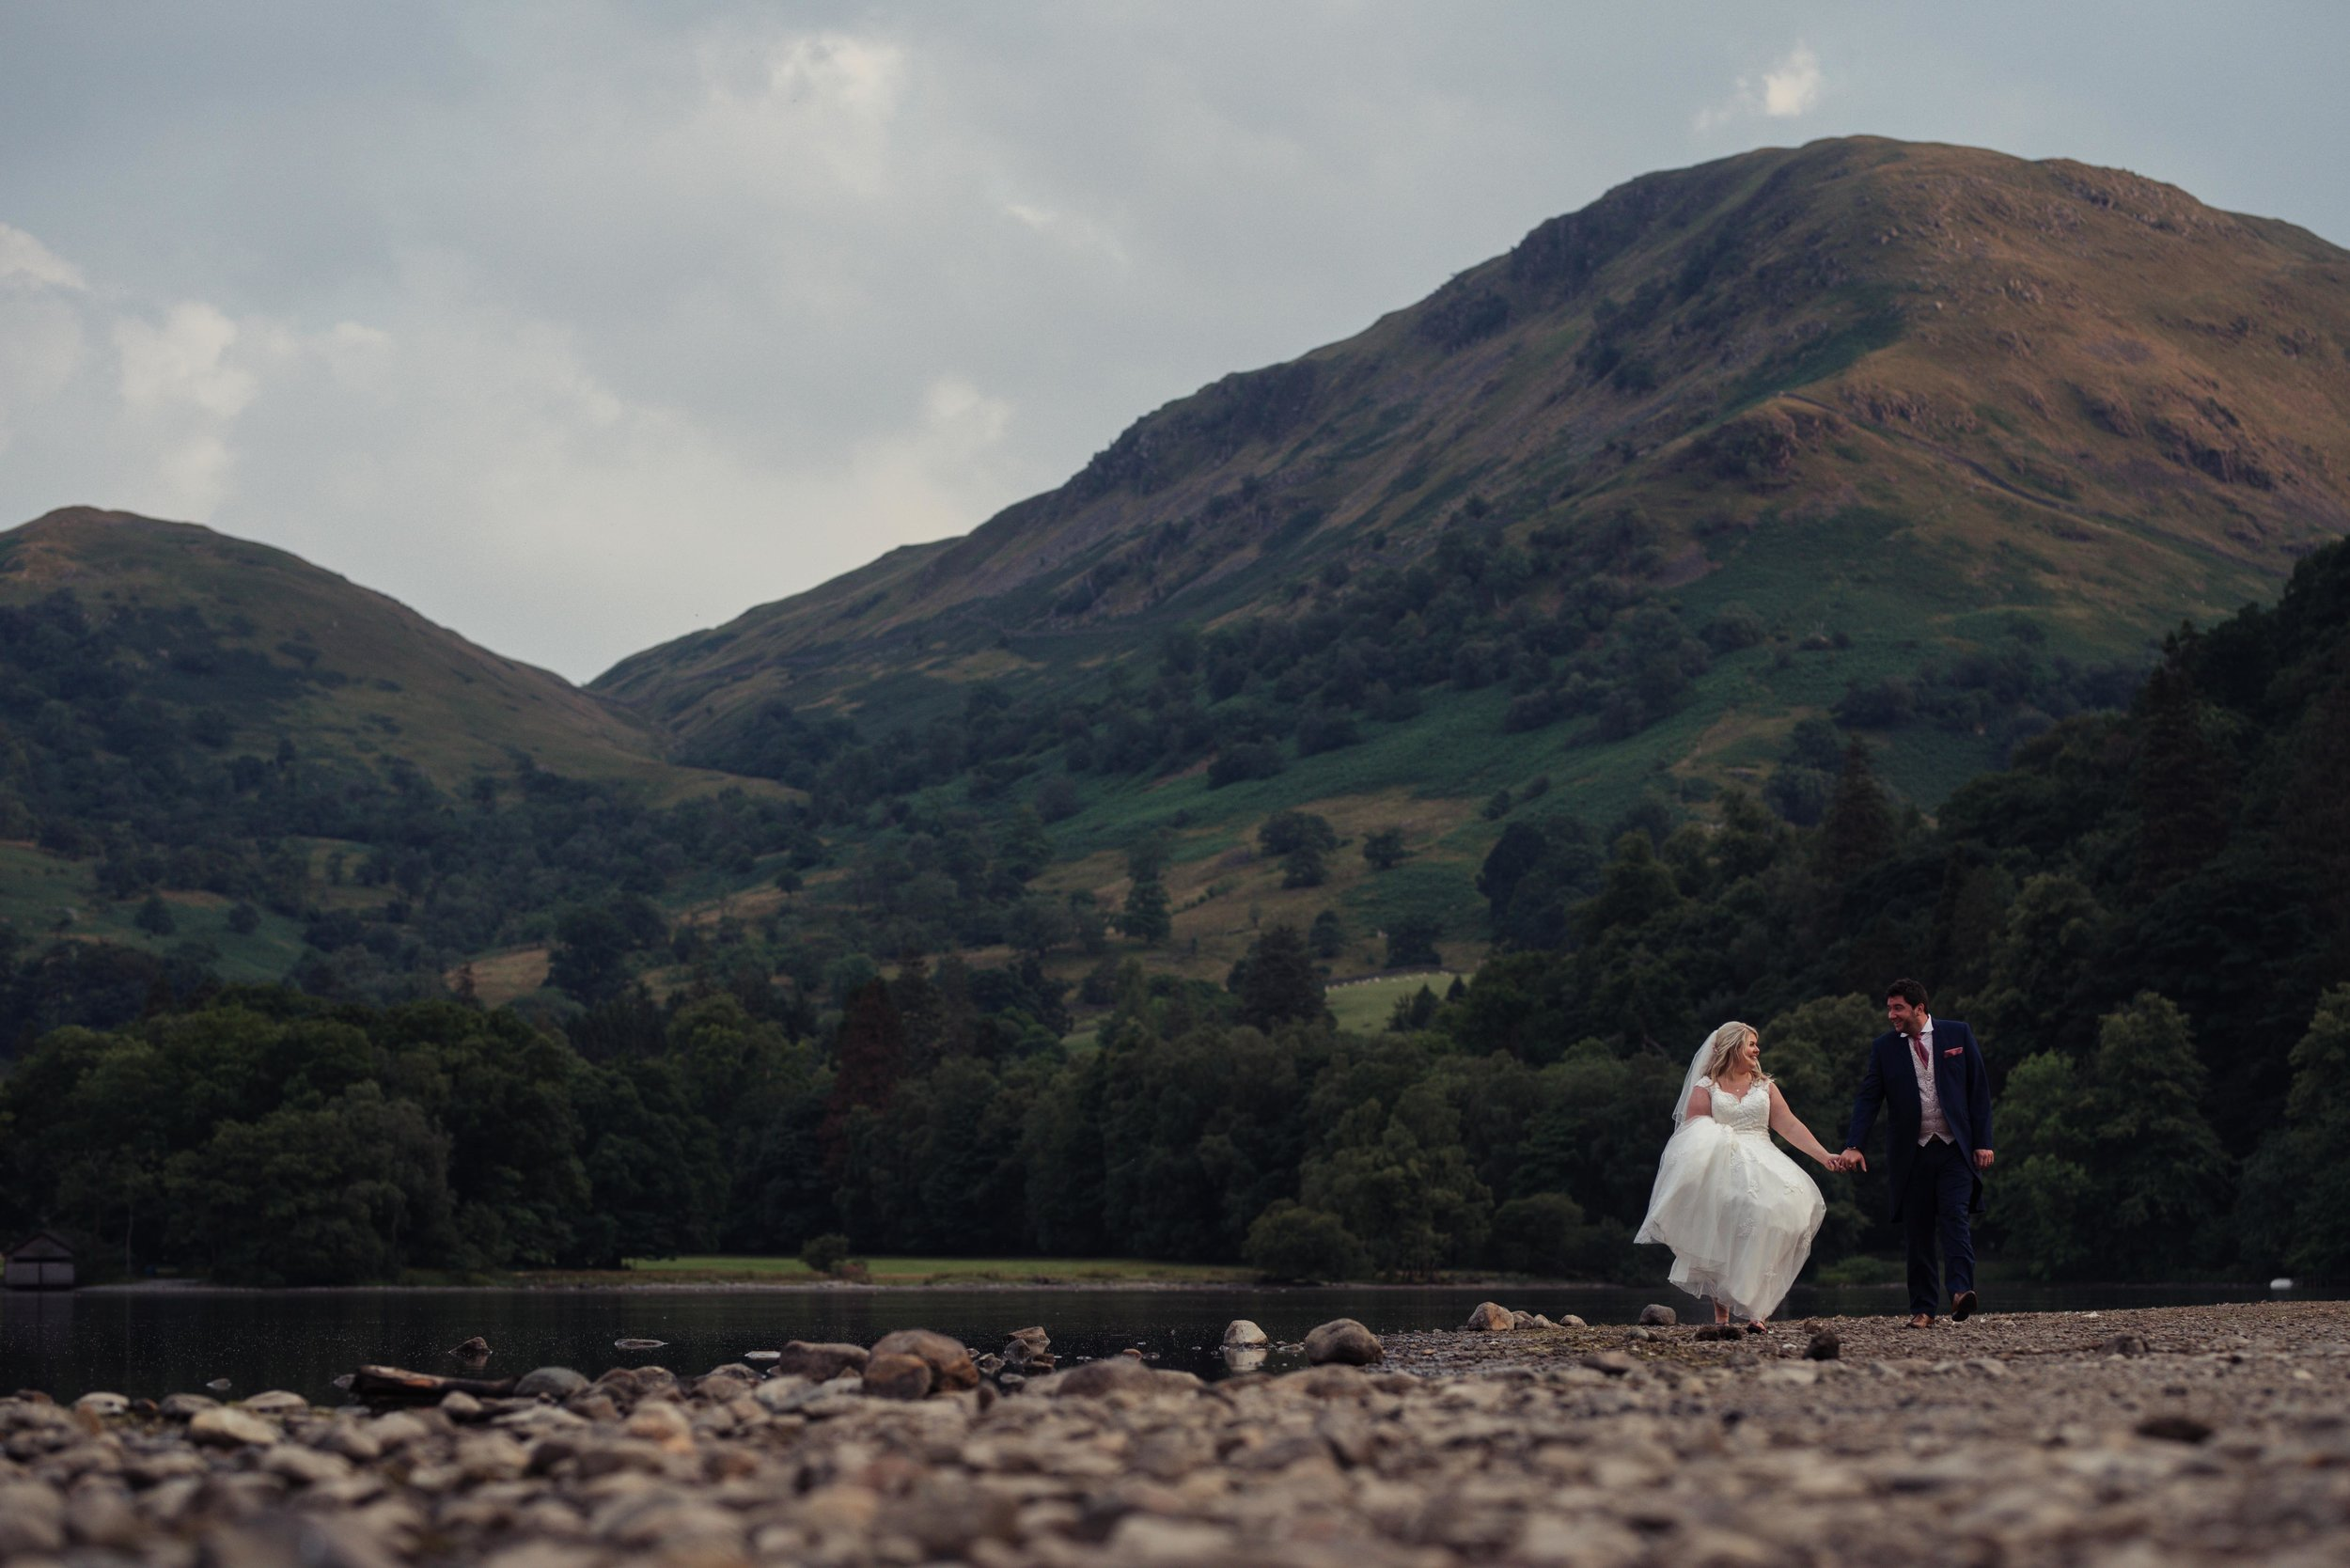 The bride and groom walking on the shores of Ullswater